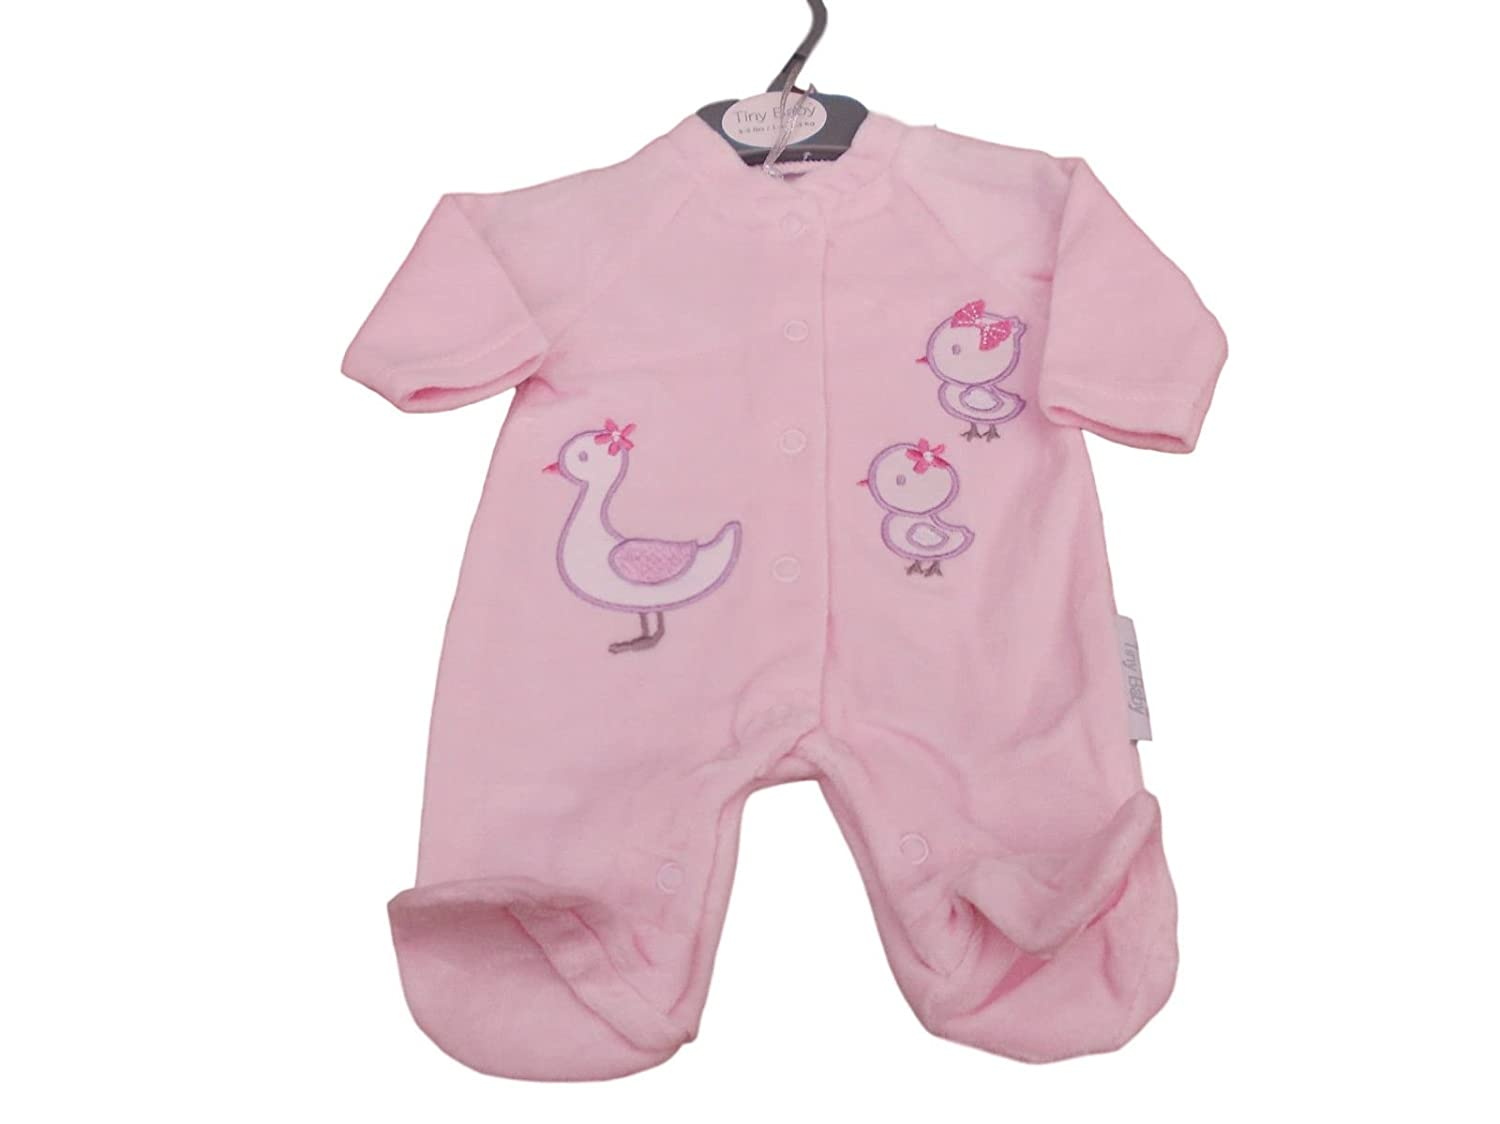 Tiny Baby with Tags Premature Little Duck Velour Sleepsuit 3-5 5-8lb